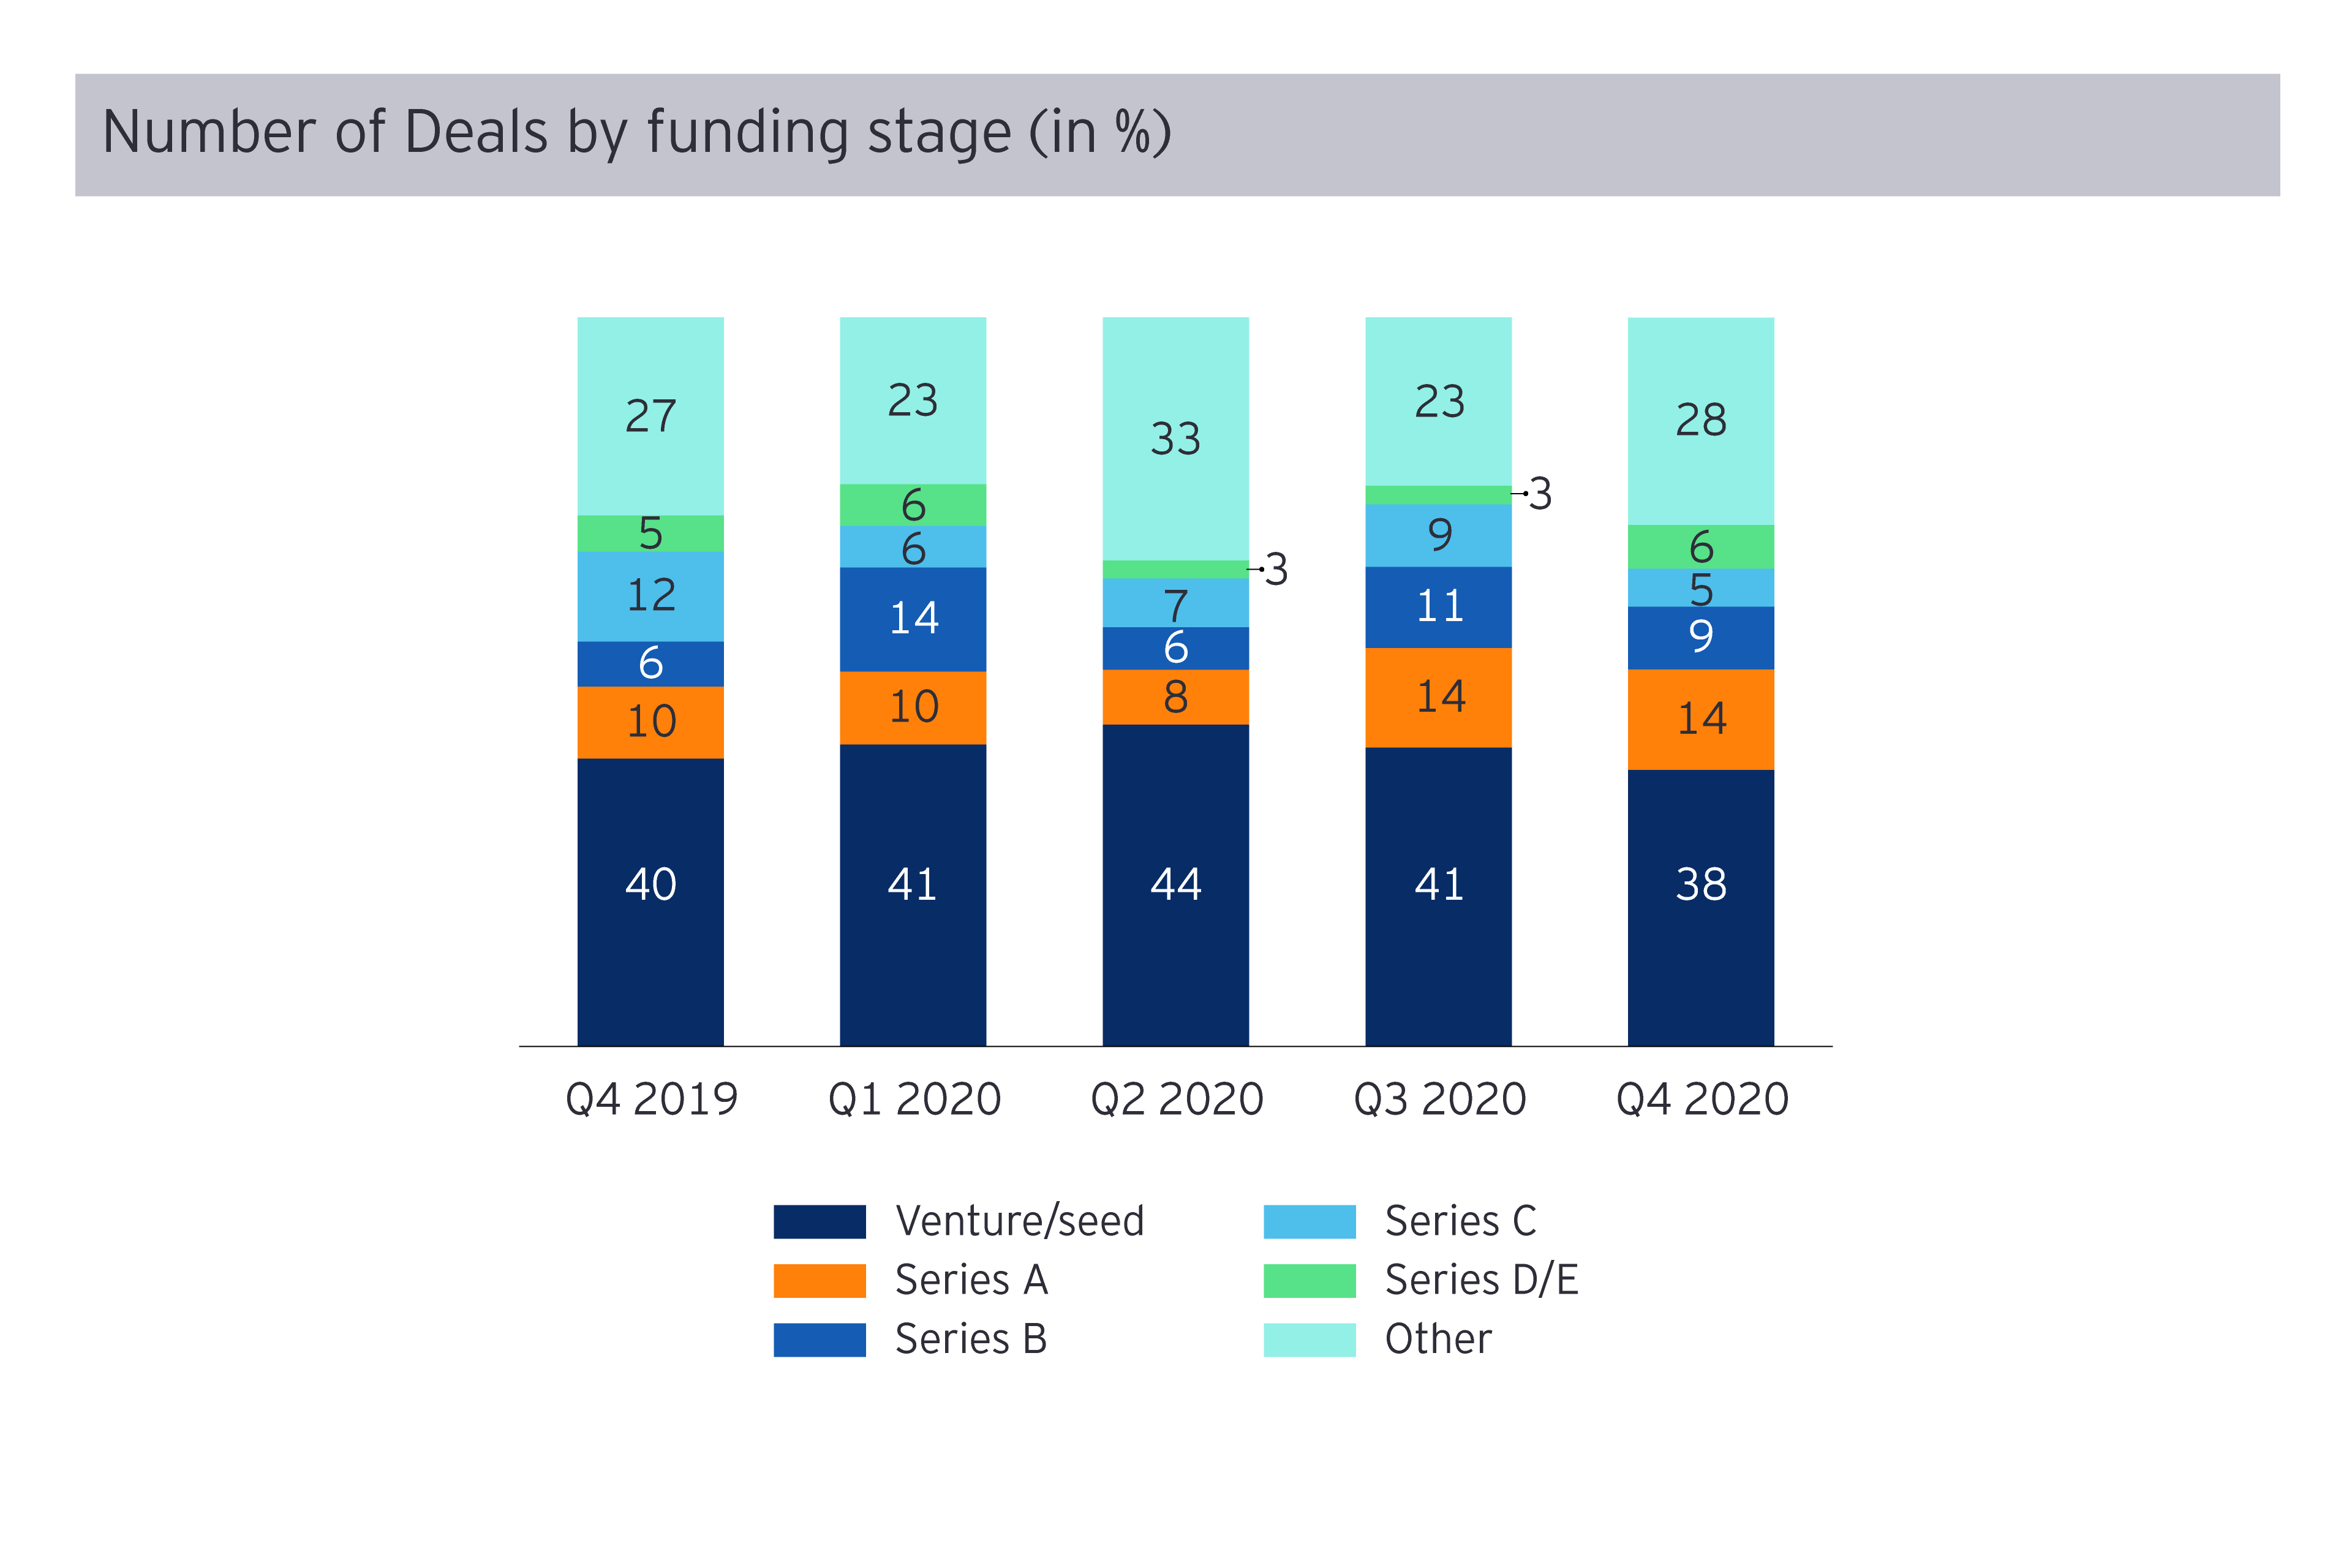 No of deals by funding stage